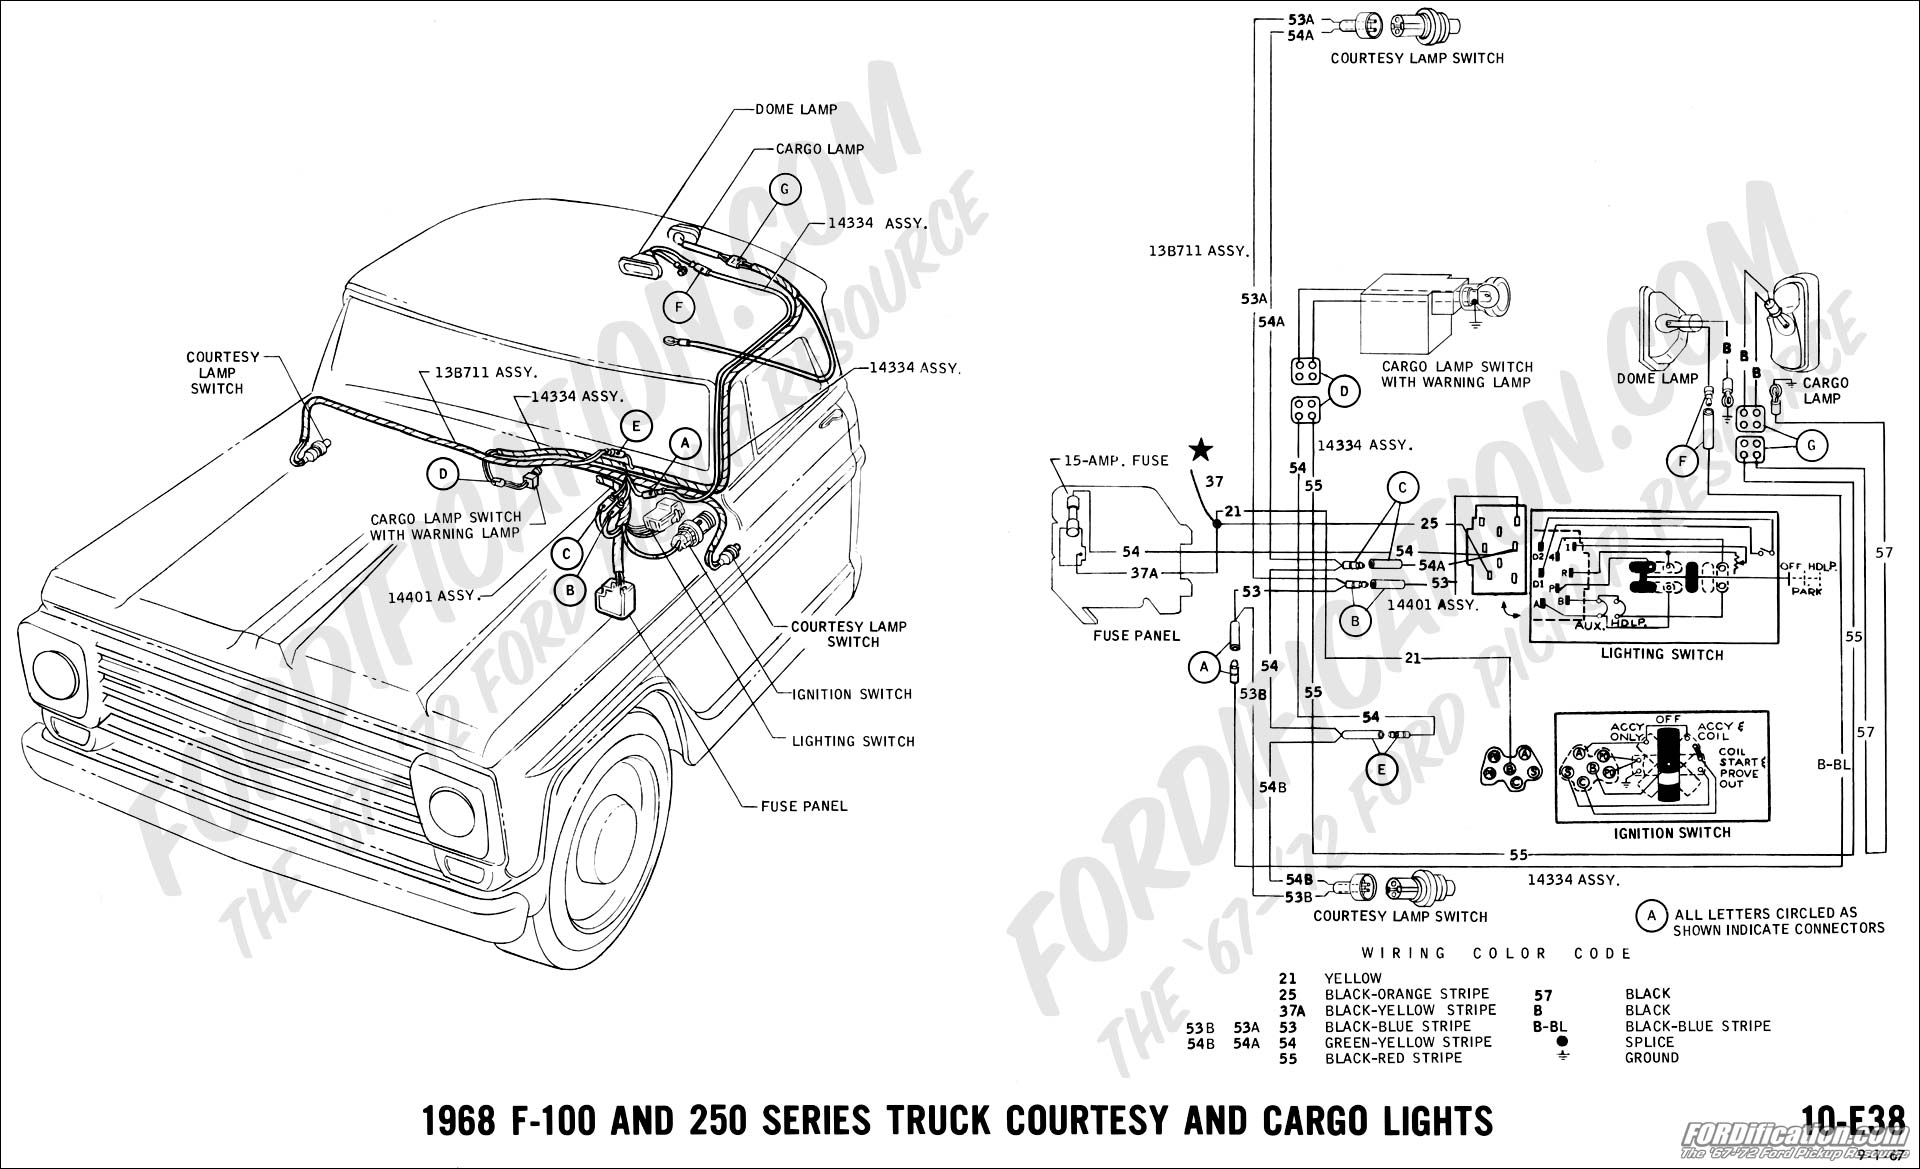 Ford F700 Wiring Diagrams Lamp The Portal And Forum Of Mustang Power Window Schematic 1968 Truck Data Diagram Rh 1 Hrc Solarhandel De F800 Diesel Schematics